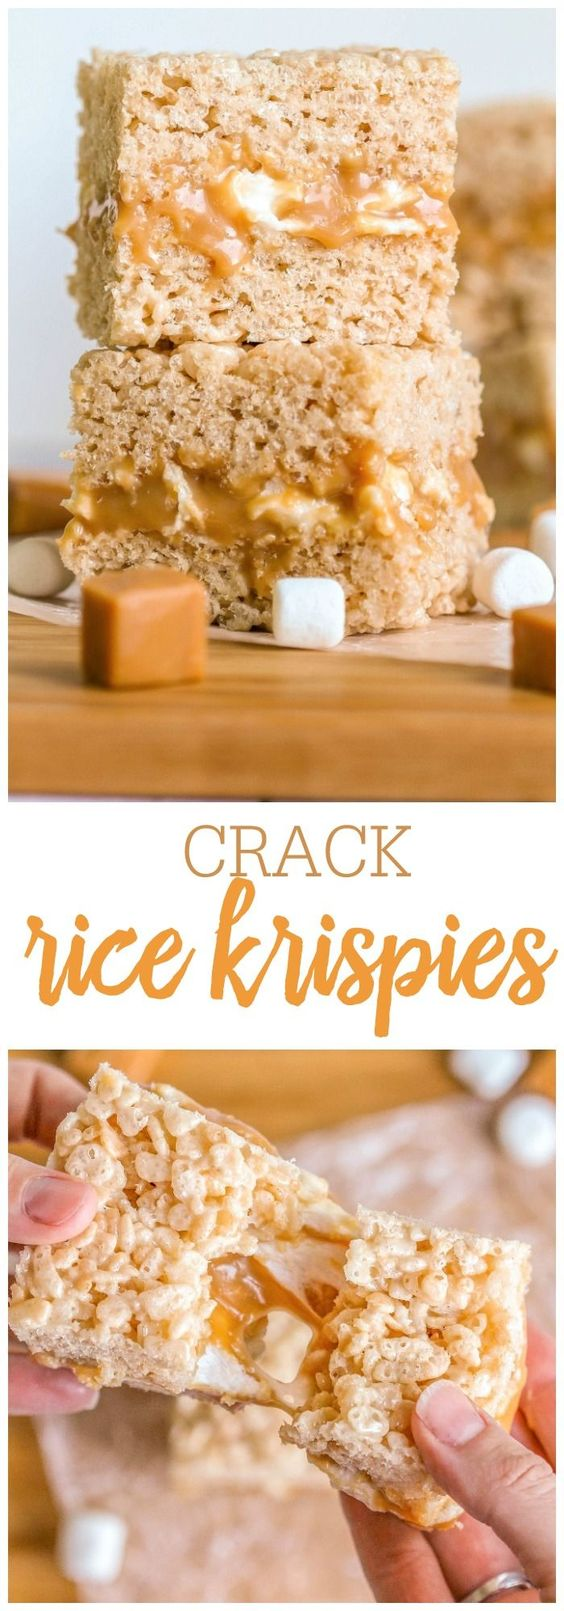 Crack Rice Krispies - yes, they're addicting!! { http://lilluna.com } A gooey marshmallow, caramel middle, drizzled with yummy chocolate!